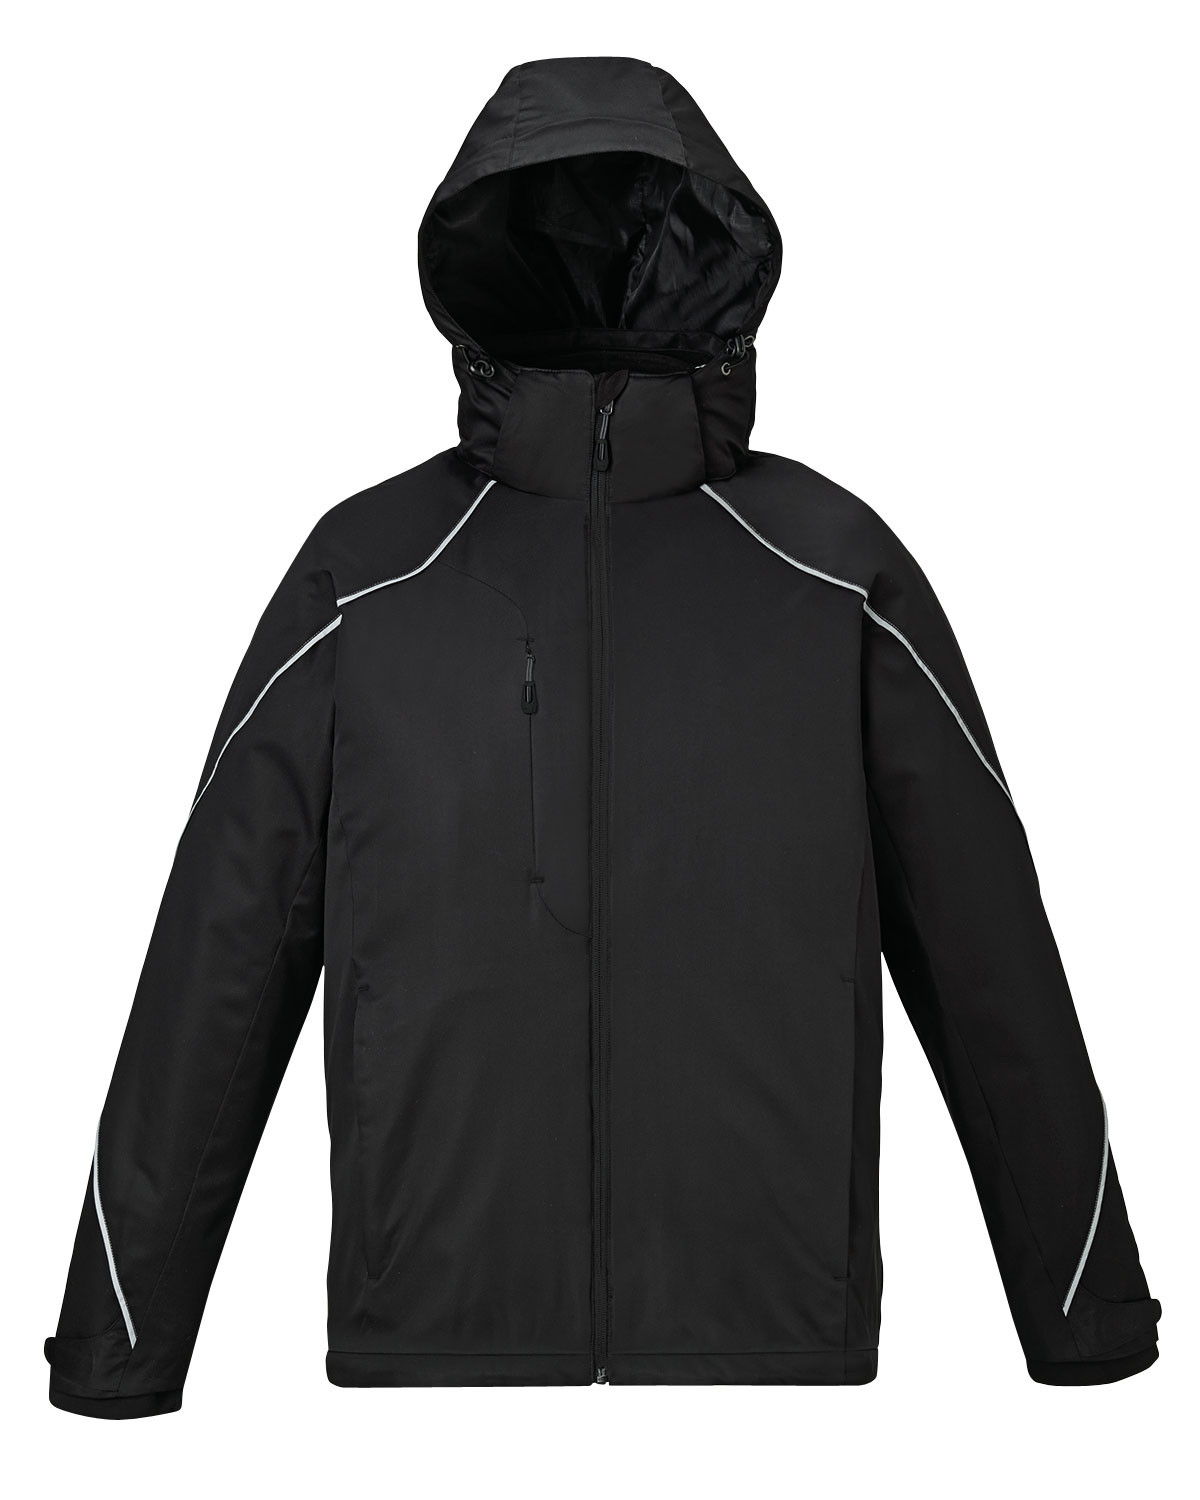 Ash City System Jackets 88196 - Angle Men's 3-In-1 Jacket ...